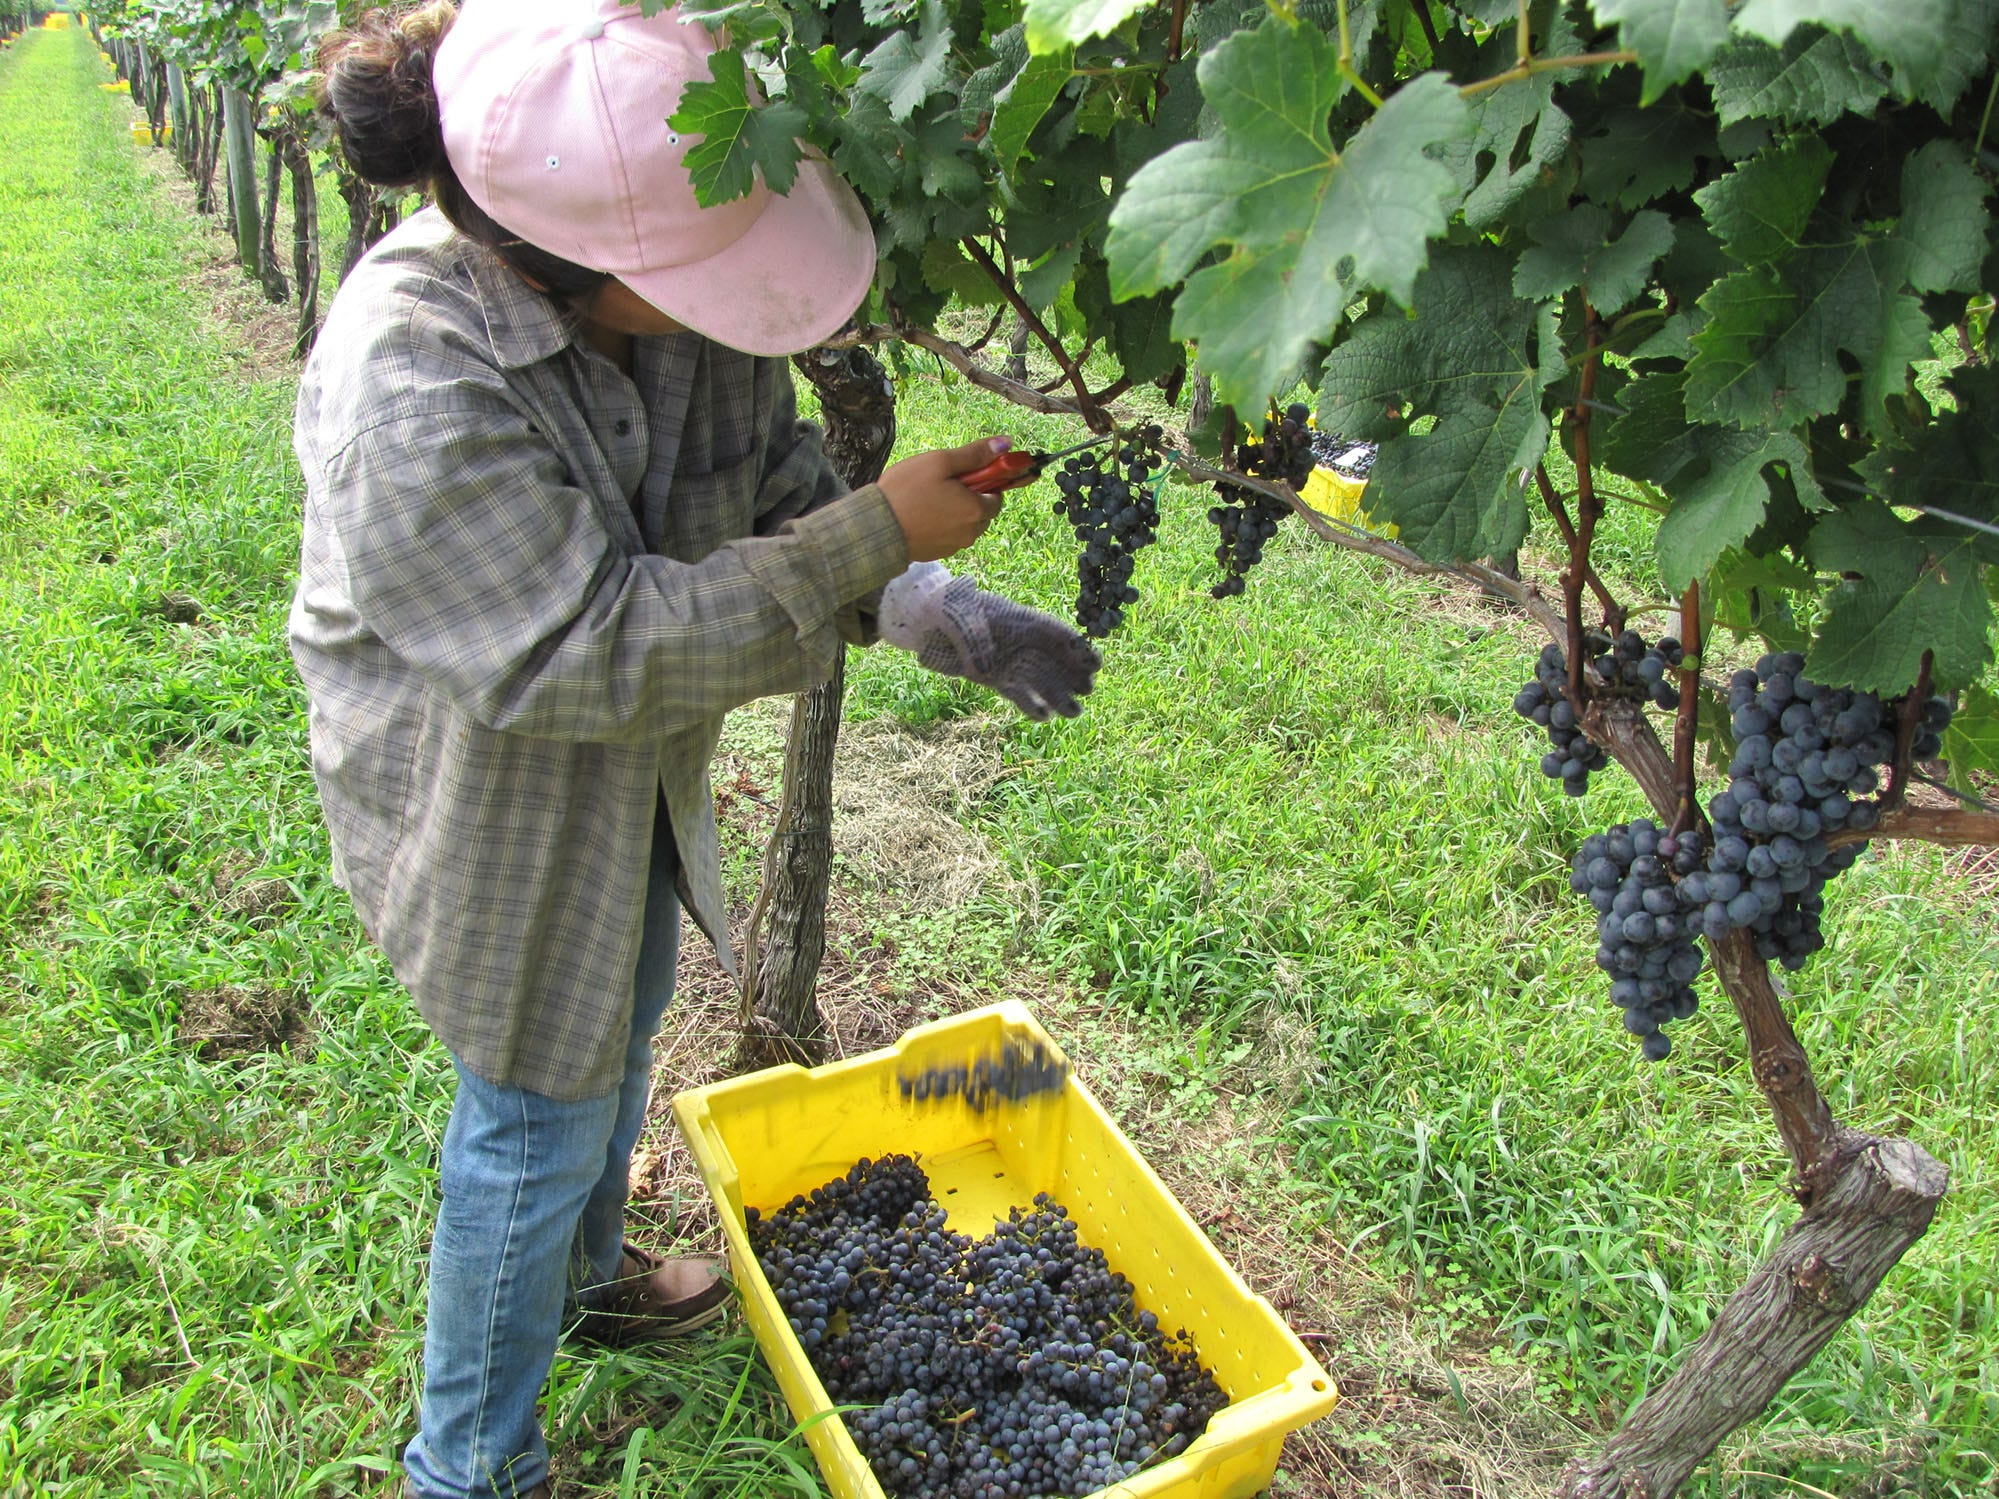 A worker harvests grapes at Chatham Vineyards on the Virginia's Eastern Shore. In November, the winery hosts oyster and wine pairings.